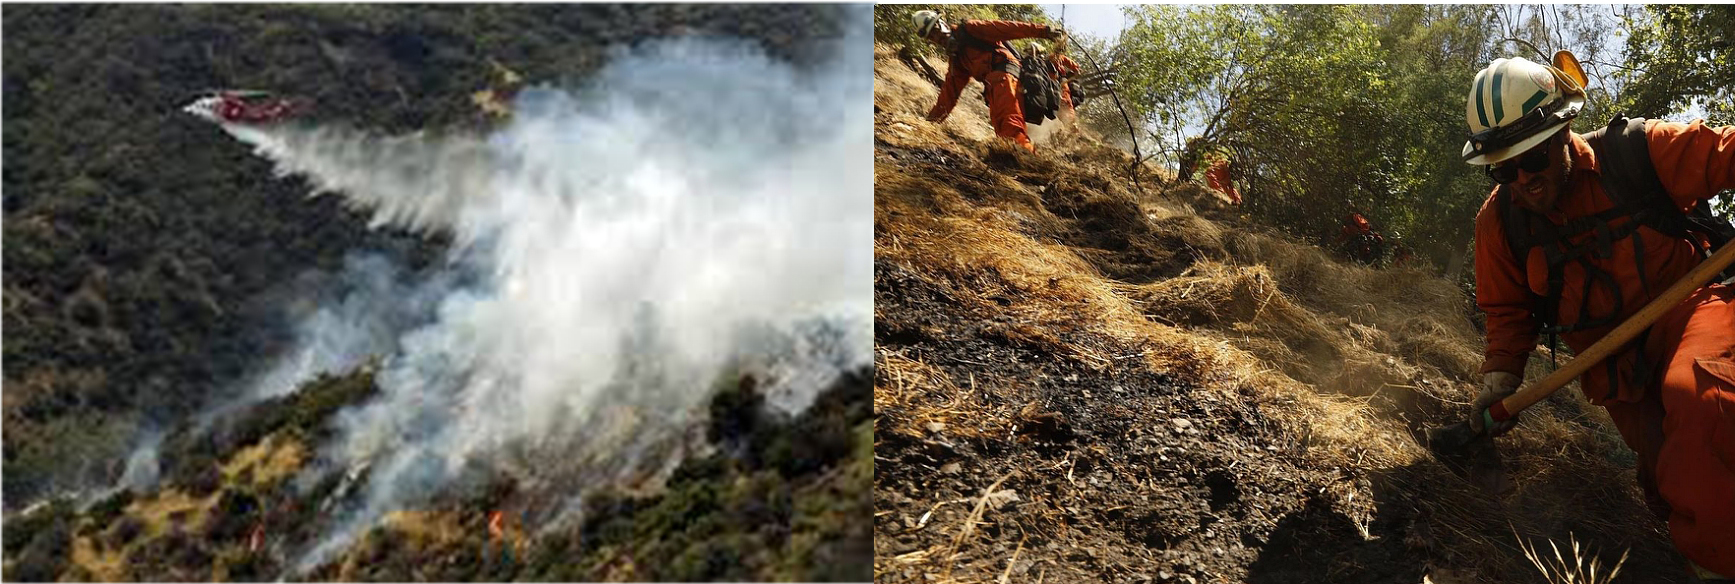 Images from Benedict Canyon's Portola Fire in June 2018 that was caused by a weed whacker.